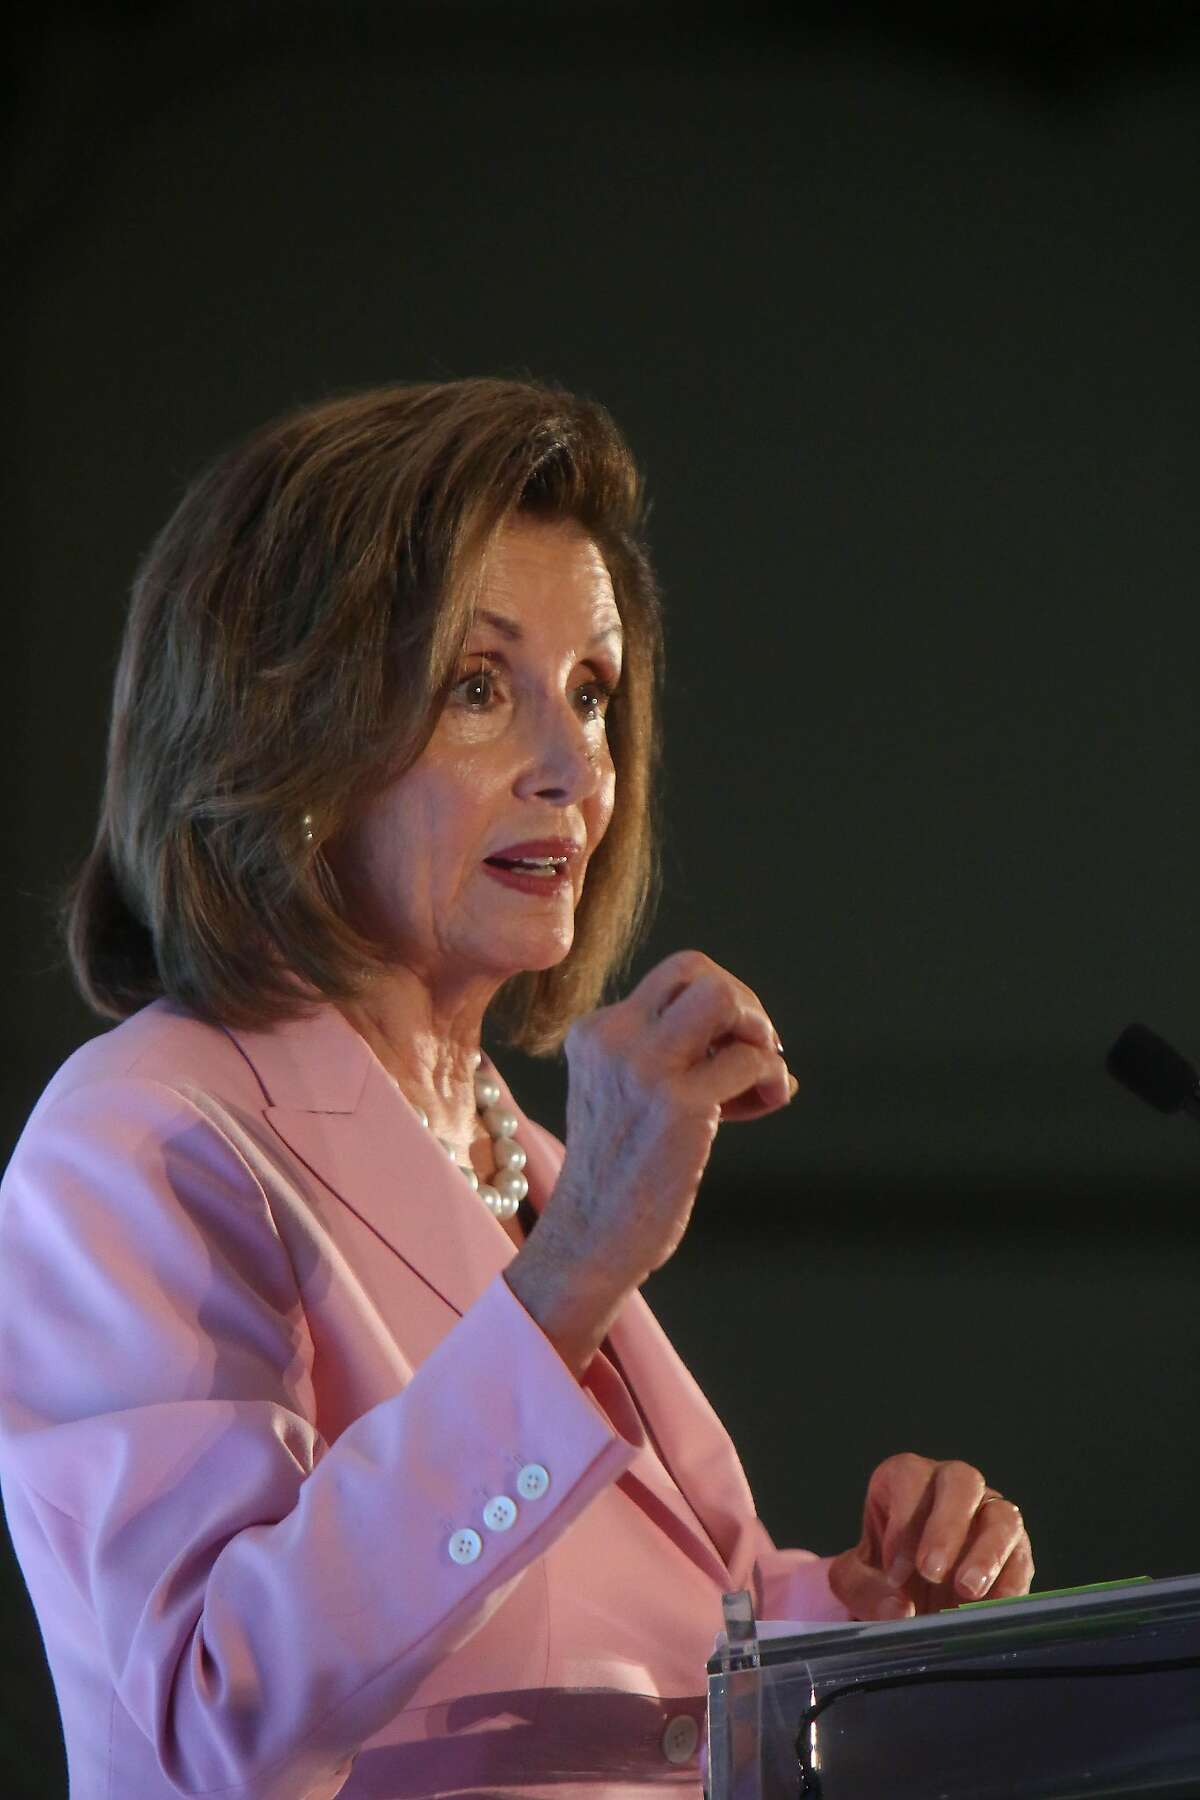 Nancy Pelosi, Speaker of the House, speaks during the Emily's List annual luncheon fundraiser in San Francisco at the Fairmont Hotel on Friday, August 16, 2019 in San Francisco, CA.